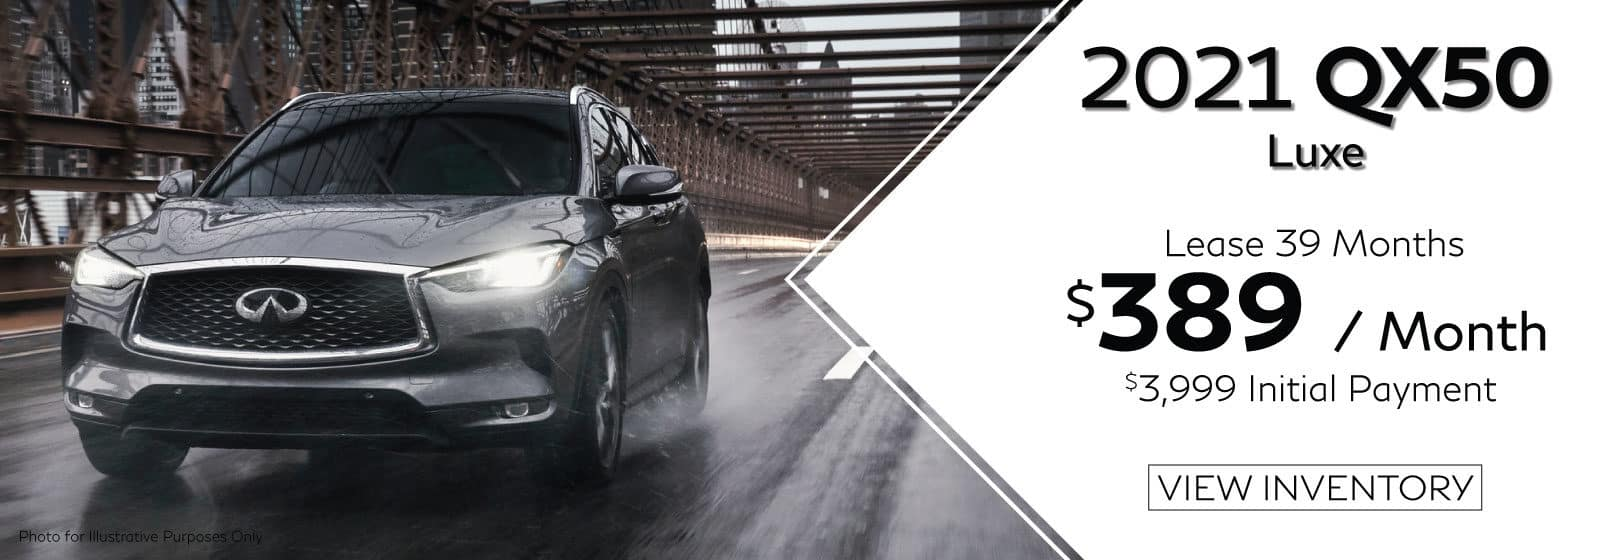 Well-qualified lessees lease a new 2021 QX50 LUXE in retailer stock for $389/Month for 39 months. $3,999 initial payment excludes taxes, title, and license. $3,999 due at lease signing (includes down payment). Offer valid only when financed through INFINITI Financial Services. Subject to residency restrictions. $42,625 MSRP includes destination and handling charge. Net capitalized cost of $34,852 includes a $700 non-refundable acquisition fee. Retailer contribution may affect actual price set by retailer. Monthly payments total $15,171 at lease end, purchase for $23,444, plus purchase option fee up to $300 (except KS & WI), plus tax, or pay excess wear & use plus $0.25 per mile for mileage over 10,000 miles per year. Disposition fee due at lease end. No security deposit required. Must take delivery from new retailer stock. Ends 07/06/2021. Example VIN 3PCAJ5BA1MF101933